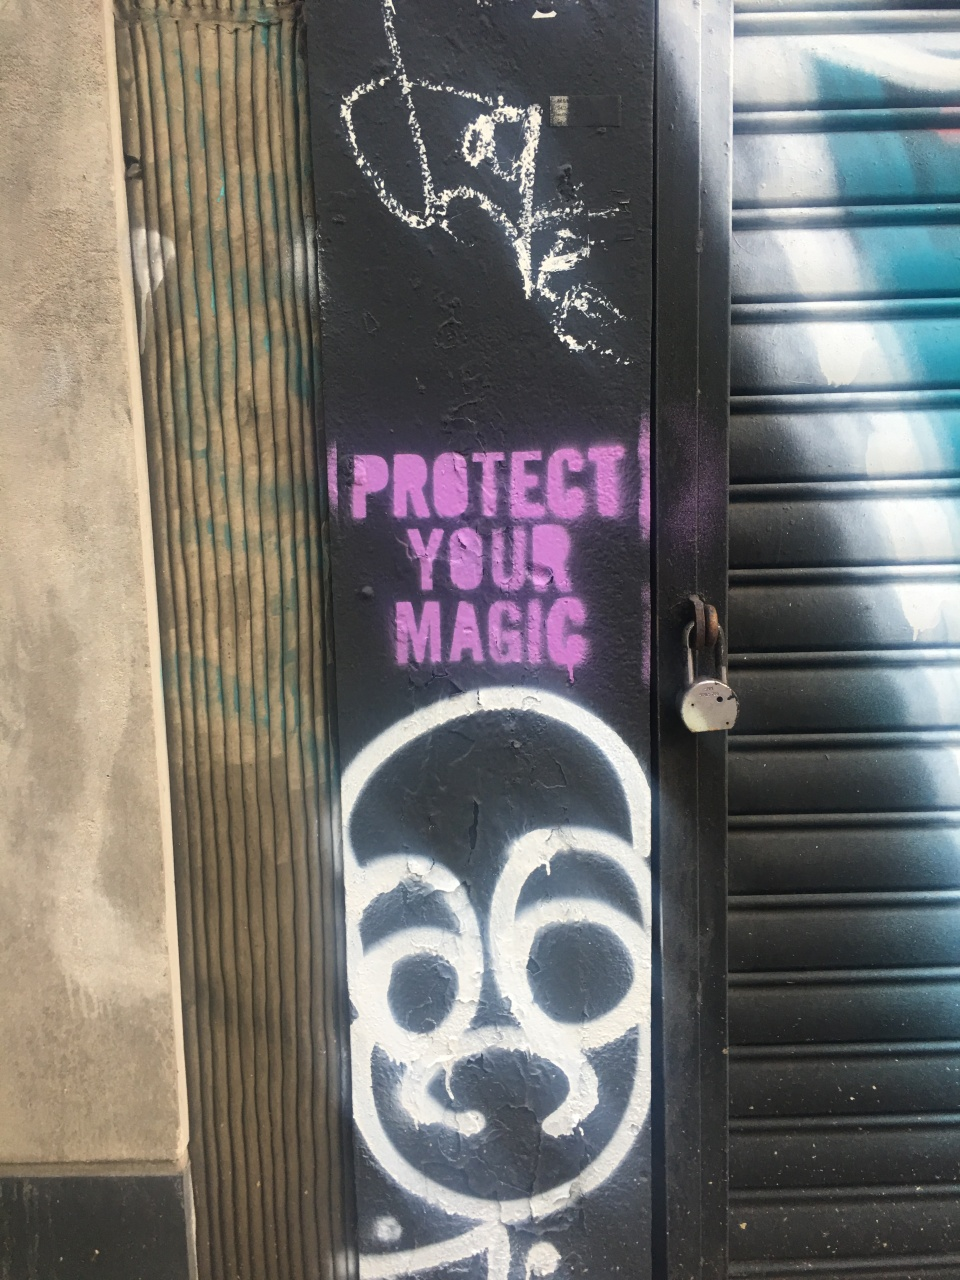 Protect your magic